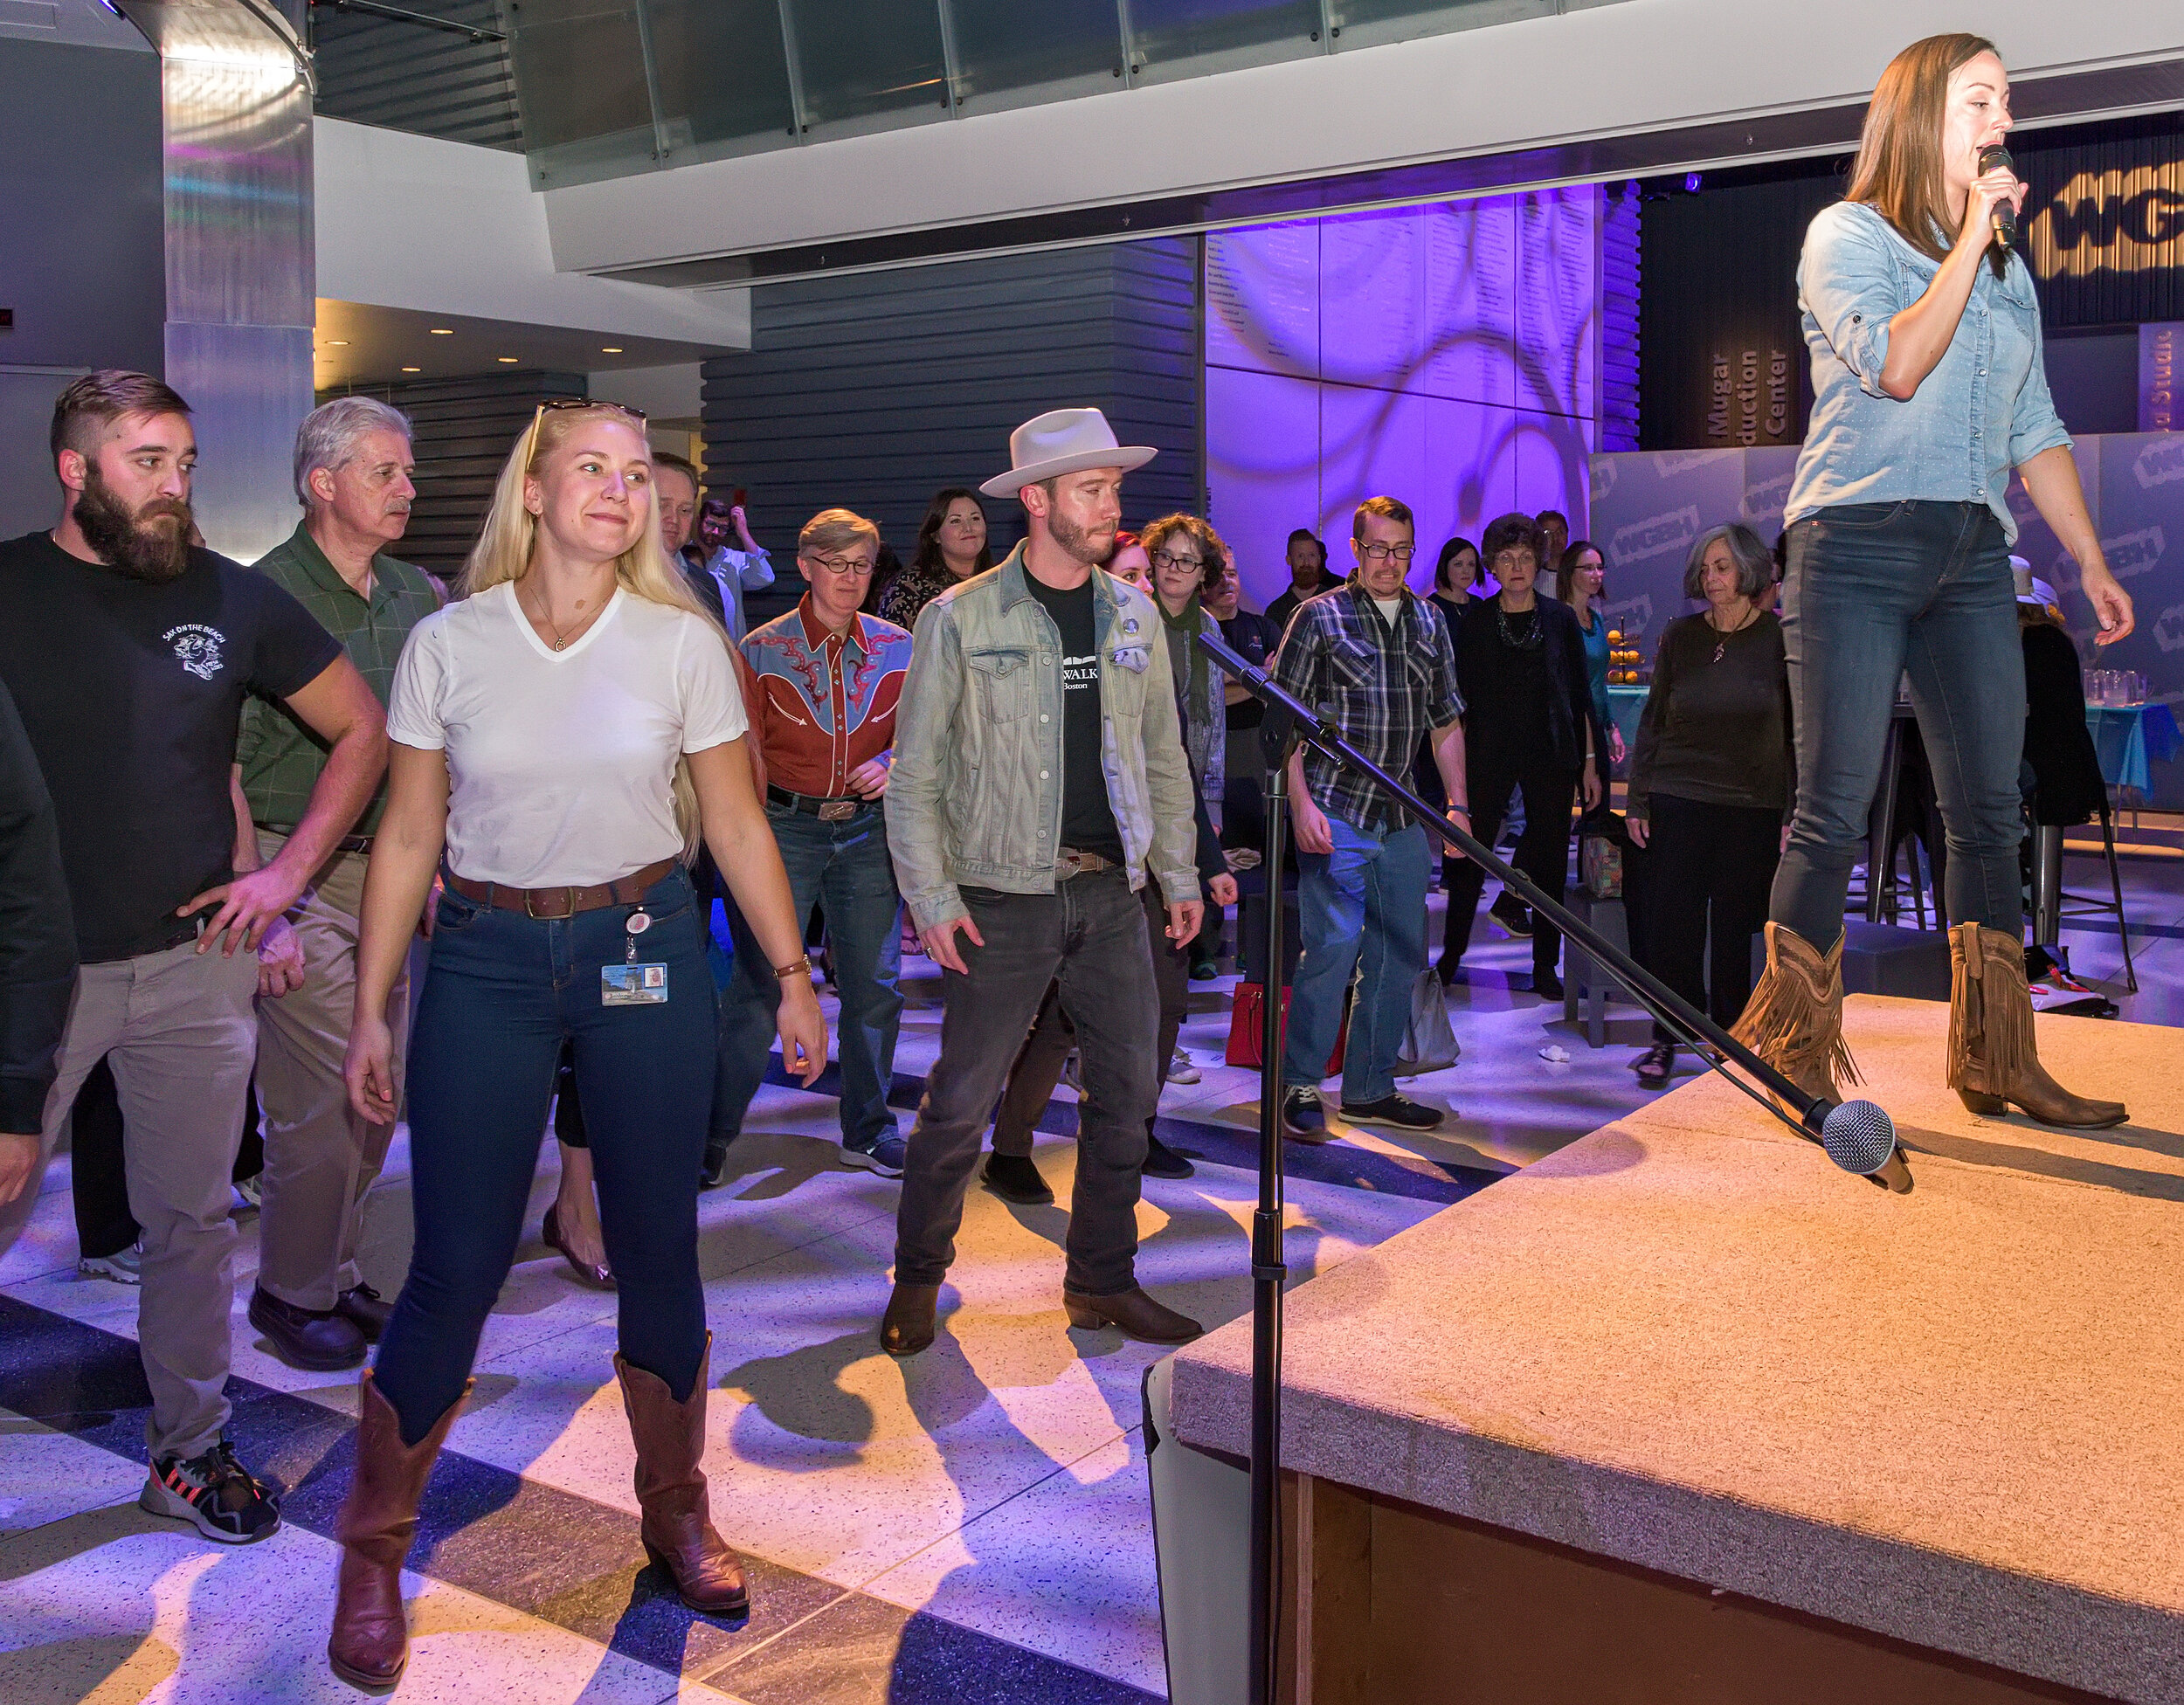 Grapevine to the Right teaching an original dance to the great crowd at WGBH's BostonTalks event!  Photo Credit: Sheldon Golder